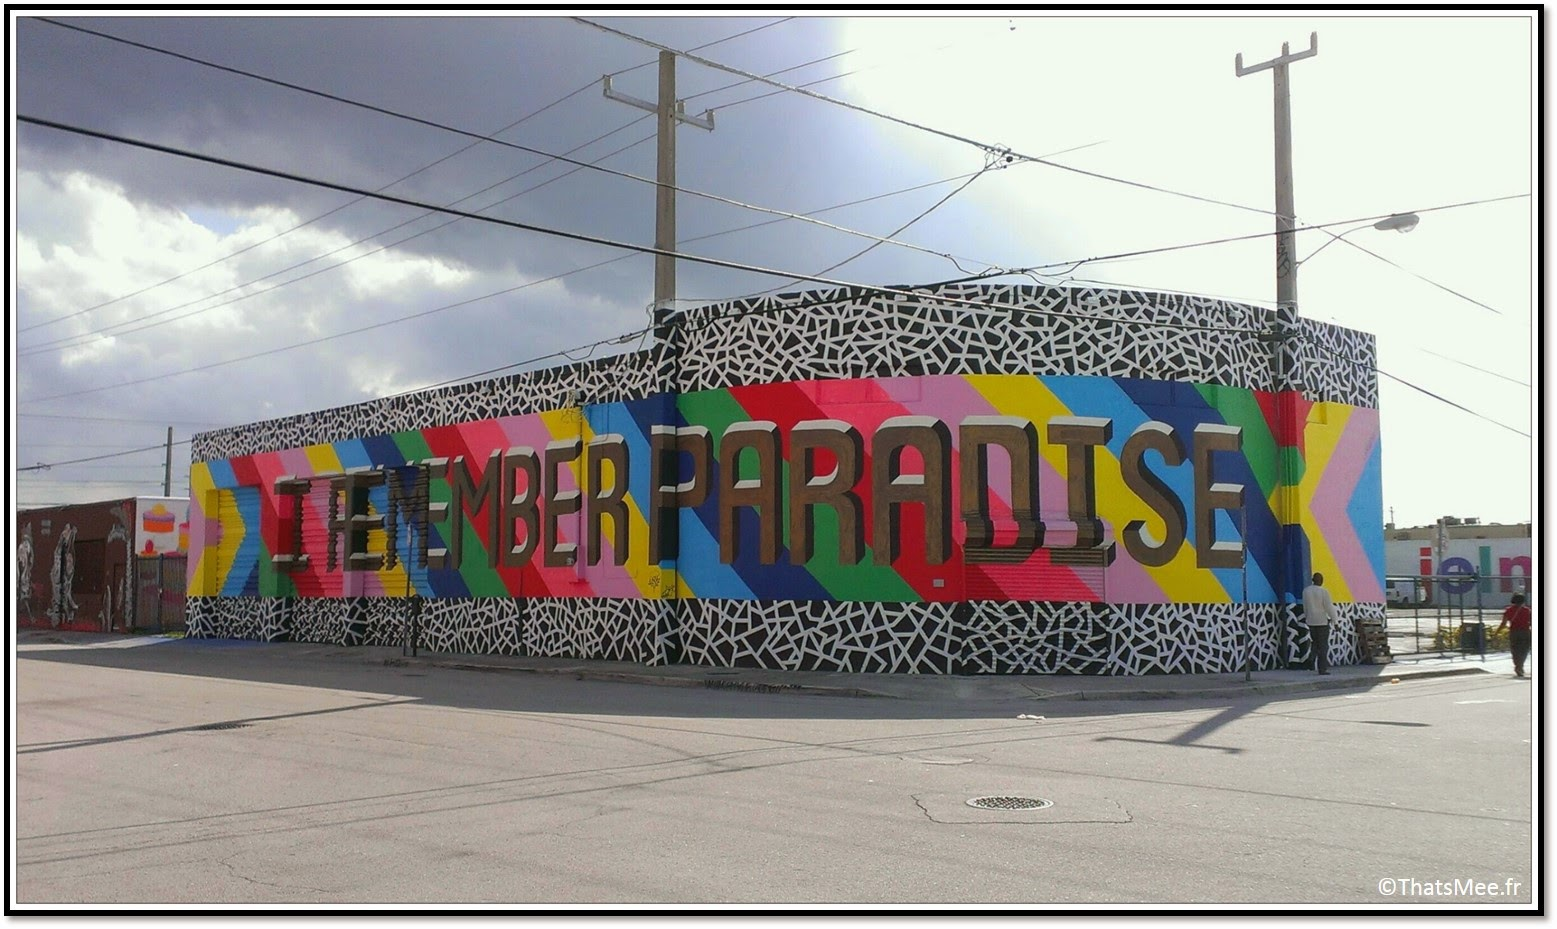 Miami midtown Wynwood District Street Art galleries NW 2nd Avenue I Remember Paradise